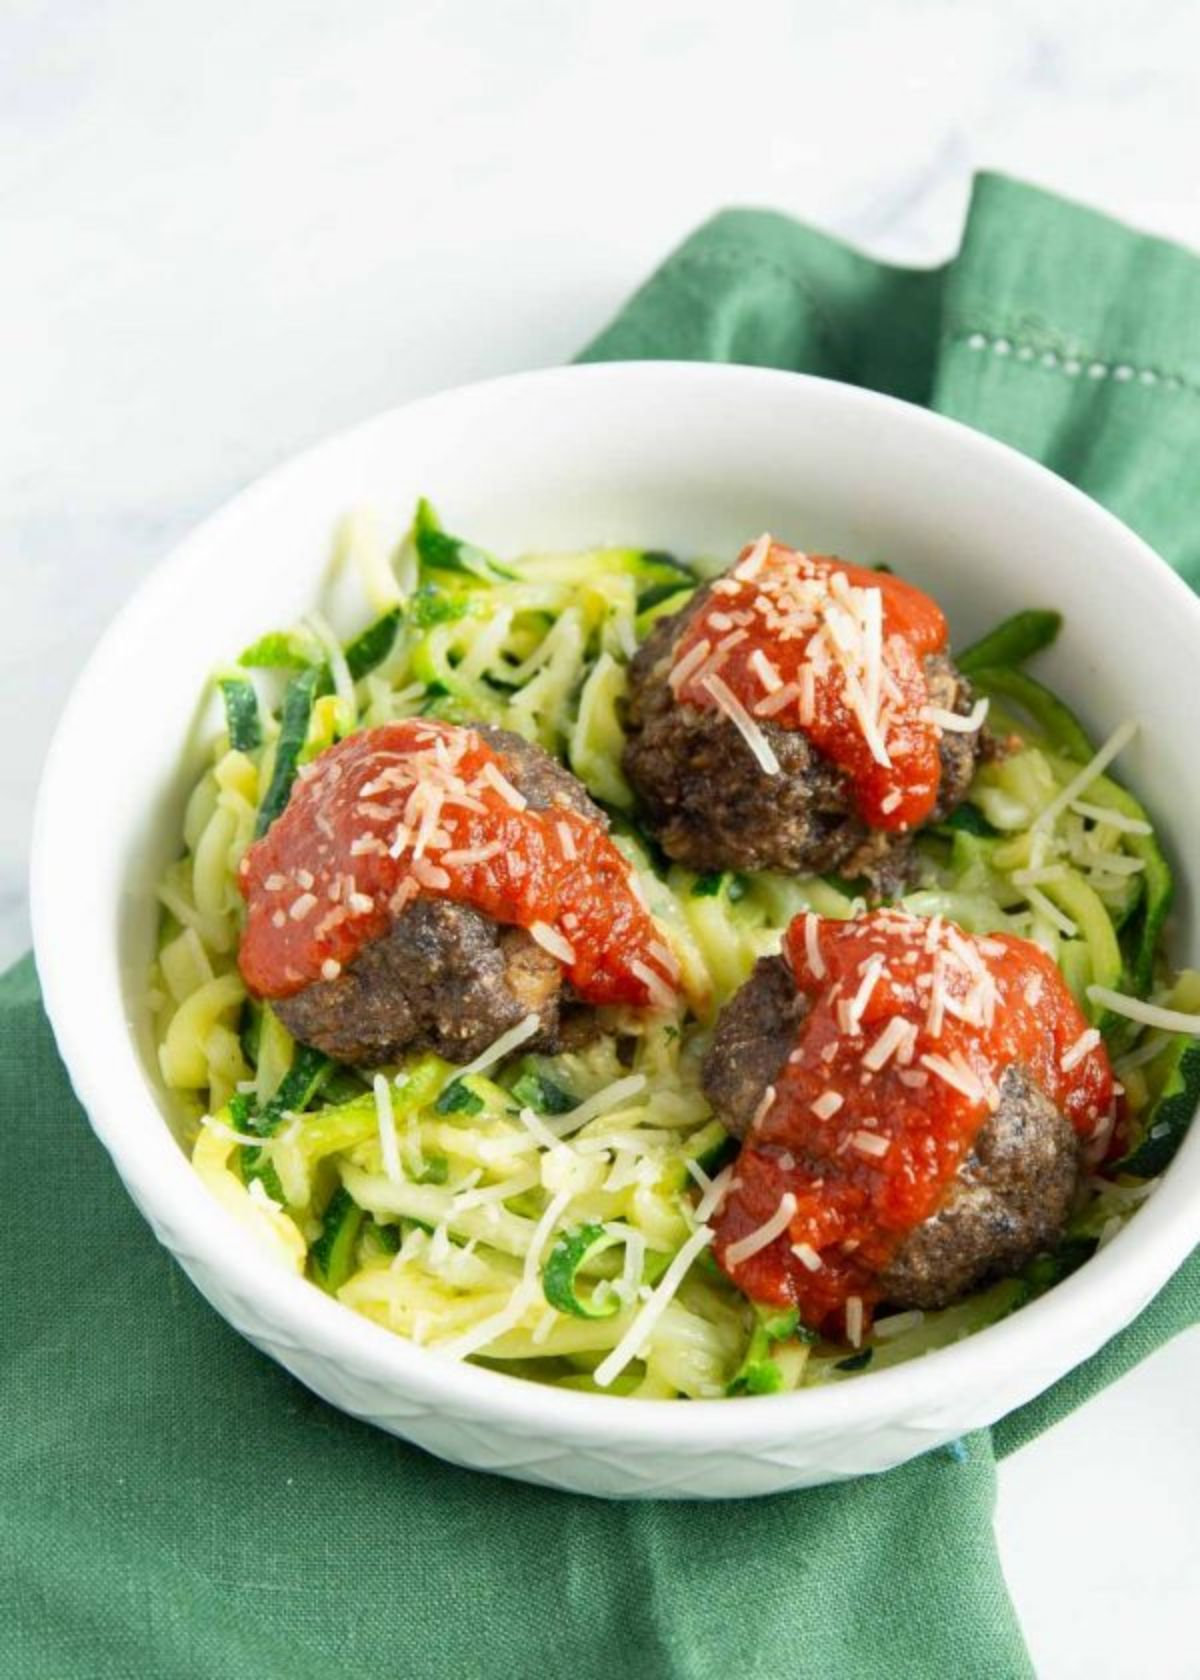 a white surface with a green cloth on top. On top of this is a white bowl filled with courgetti, 3 large meatbalss and 3 blobs of tomato sauce